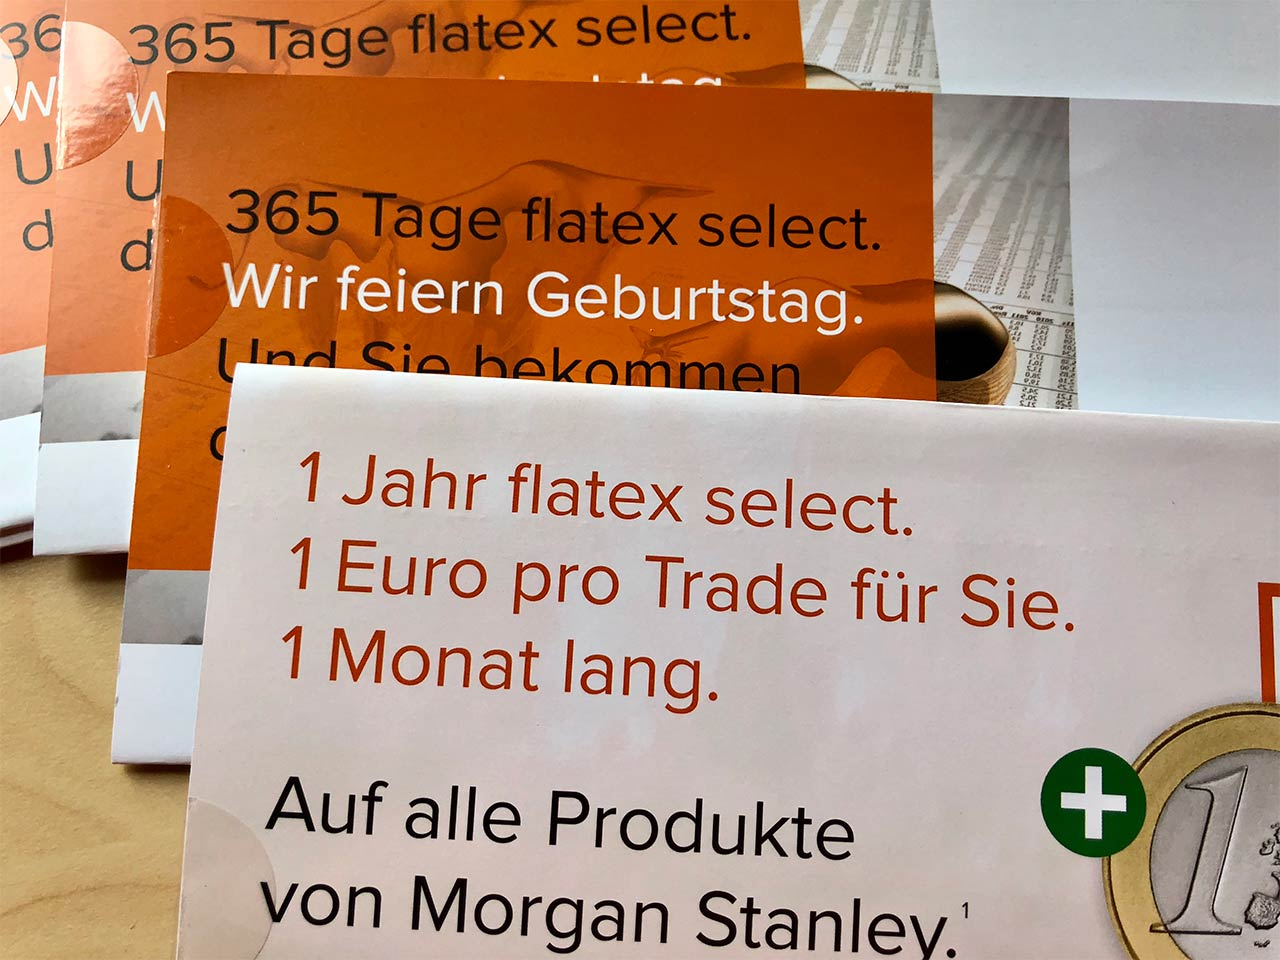 flatex 365 Tage select Direct Mailing Mehr für die Märkte More for the markets